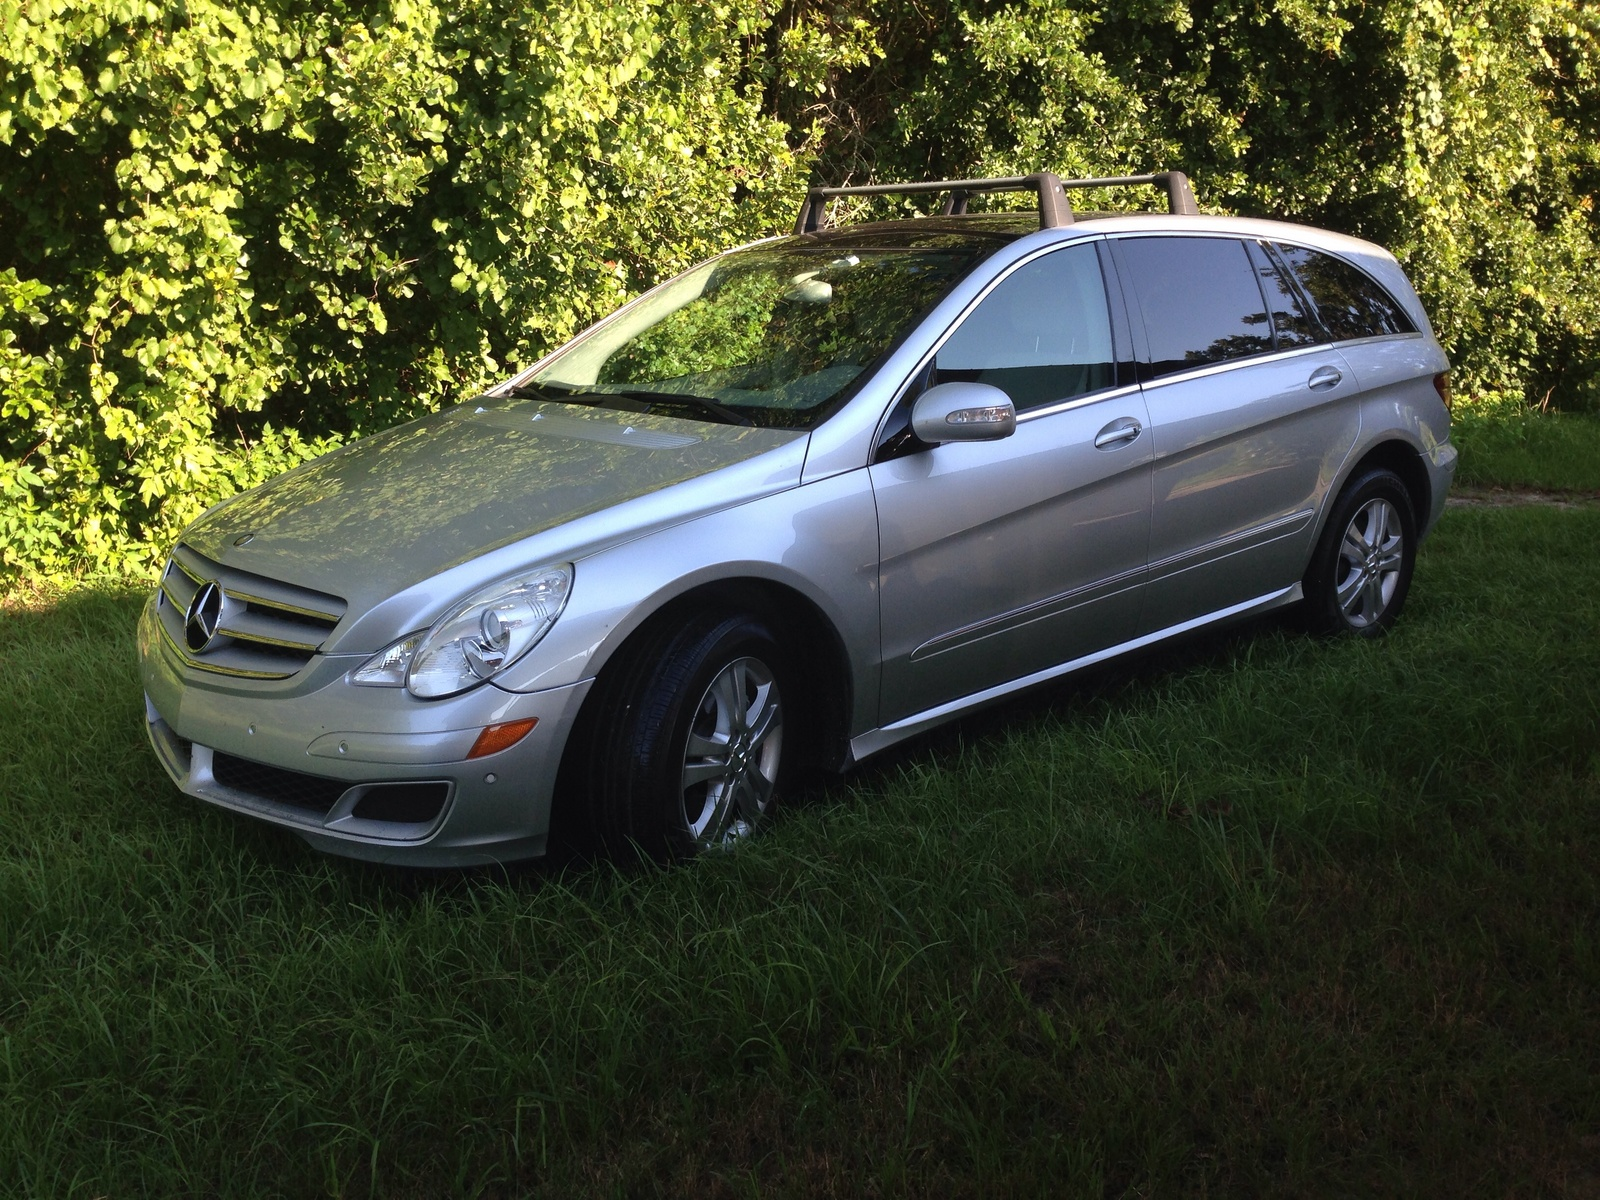 2006 mercedes benz r class pictures cargurus for Mercedes benz r500